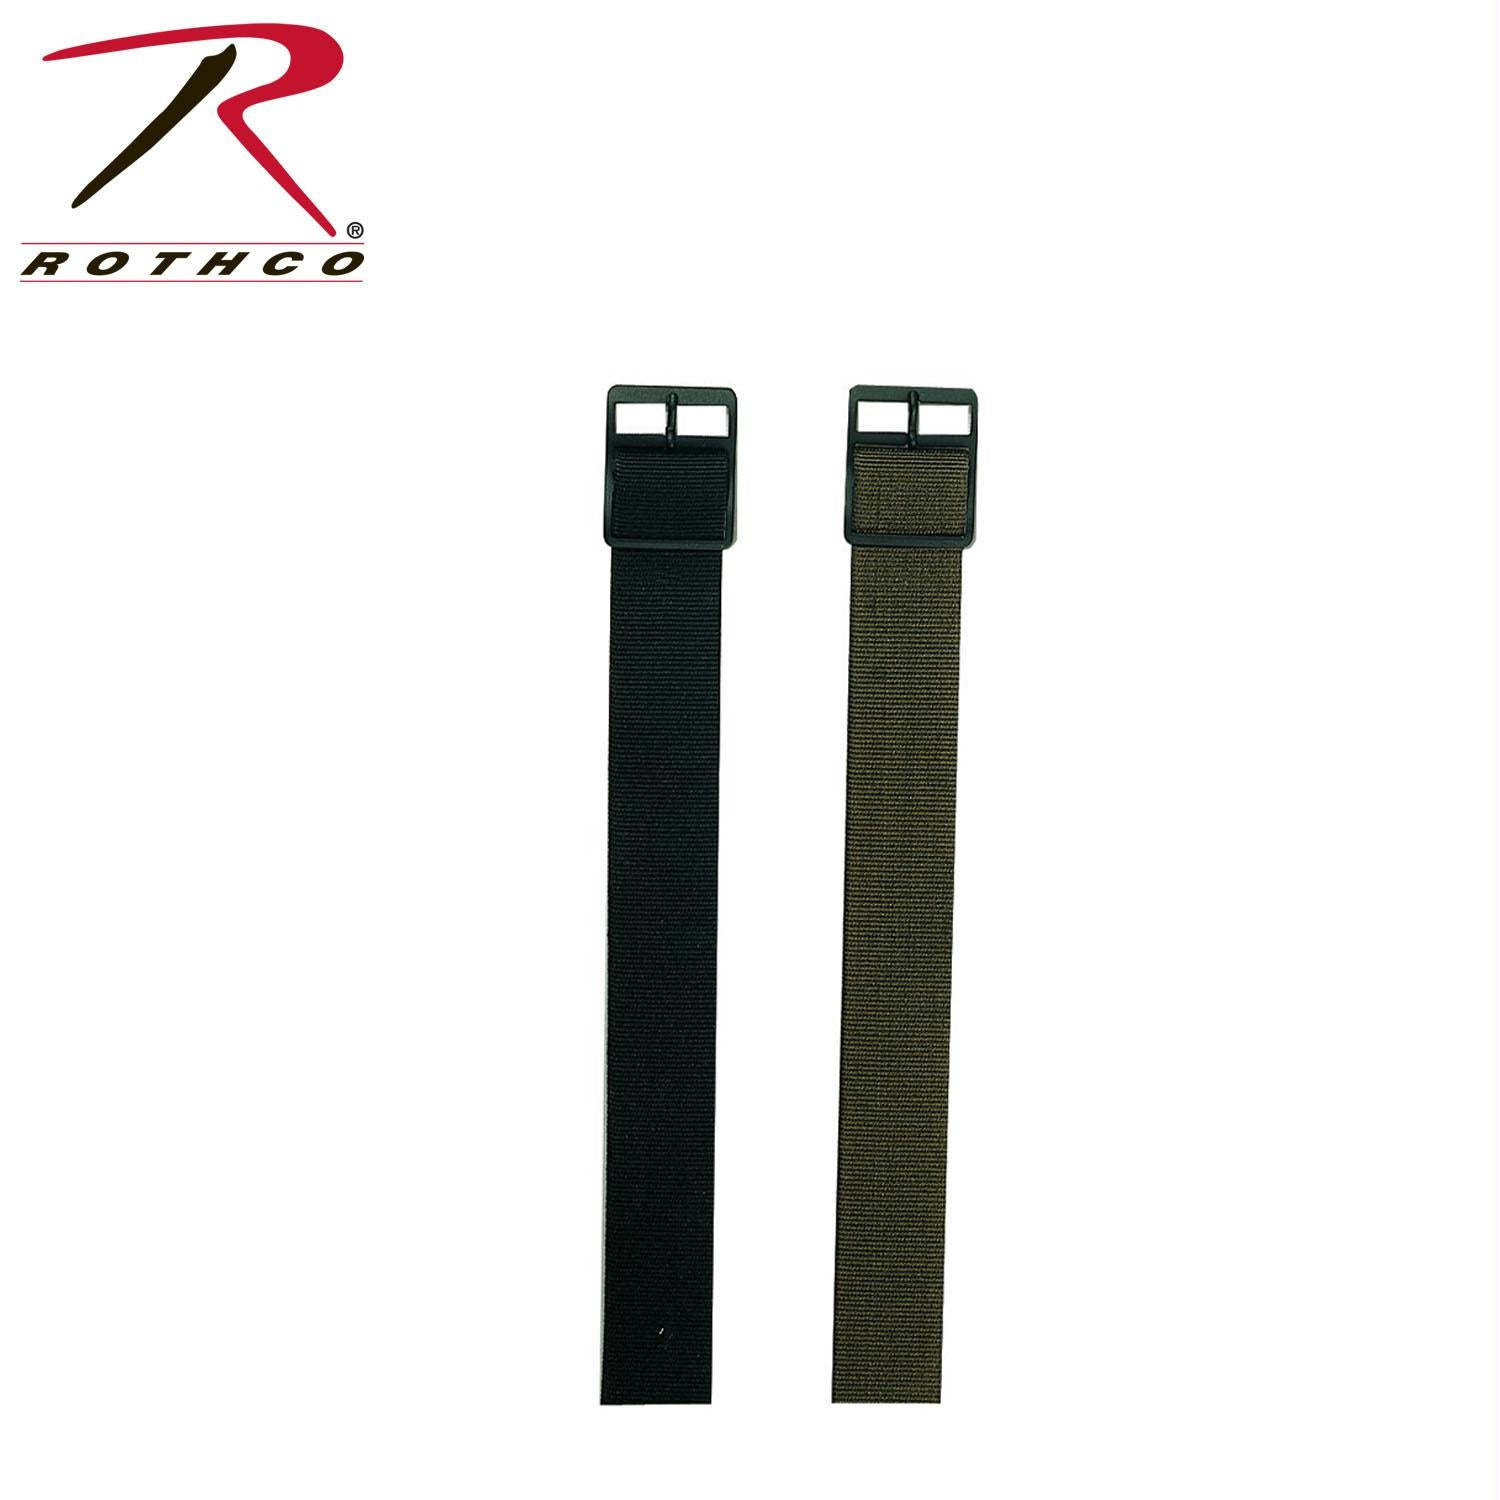 Rothco Military Watchbands - Olive Drab